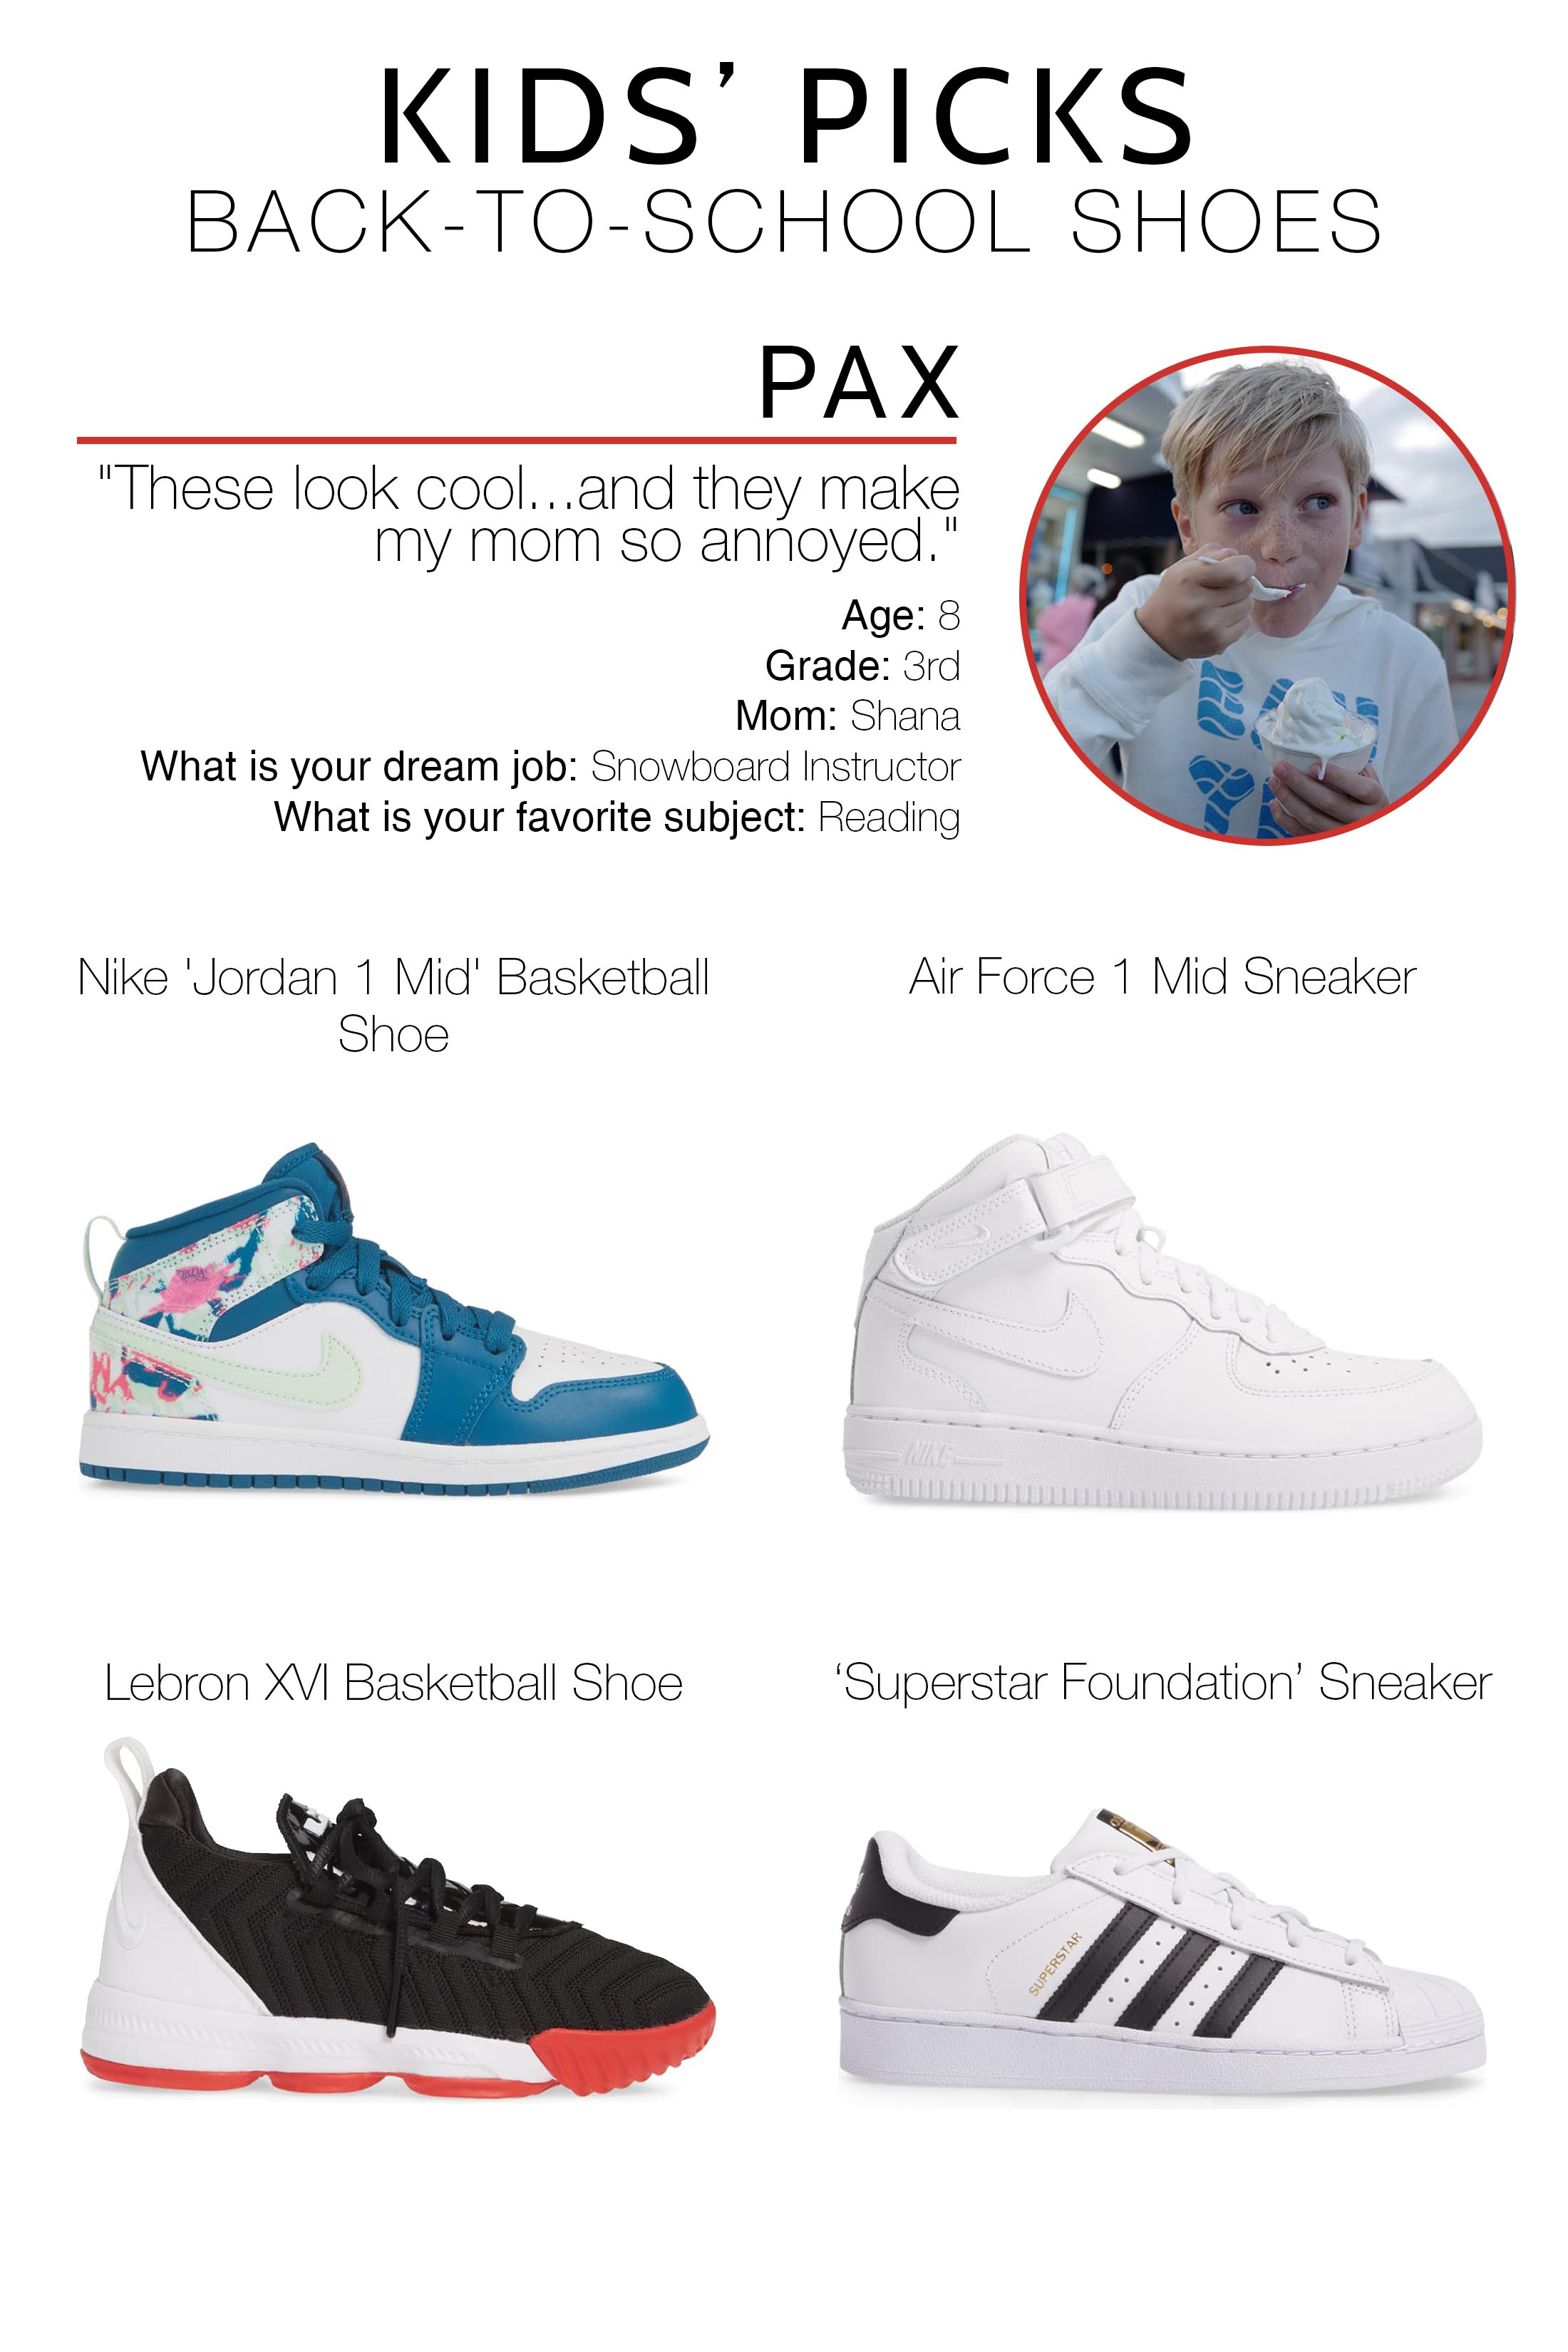 Kids Pick Their Back-To-School Shoes